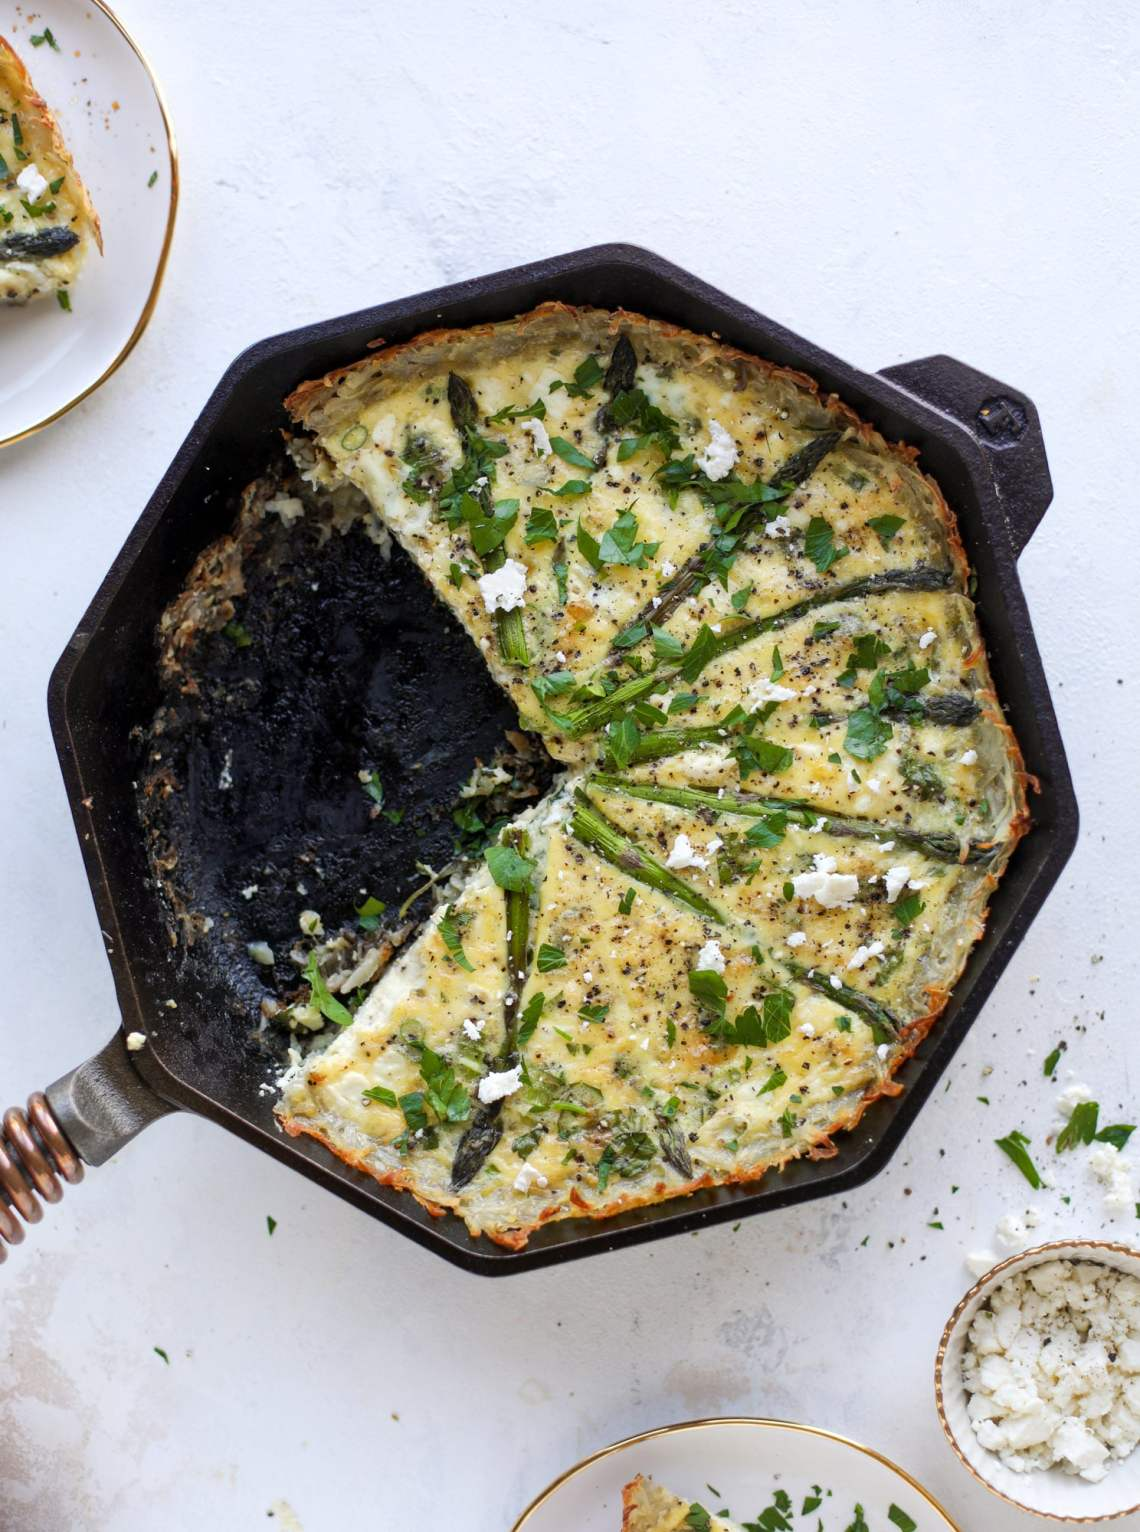 This hash brown quiche is such a fantastic meal! Perfect for brunch or dinner, the bottom is a crispy hash brown crust and the filling is divine. I howsweeteats.com #hashbrown #quiche